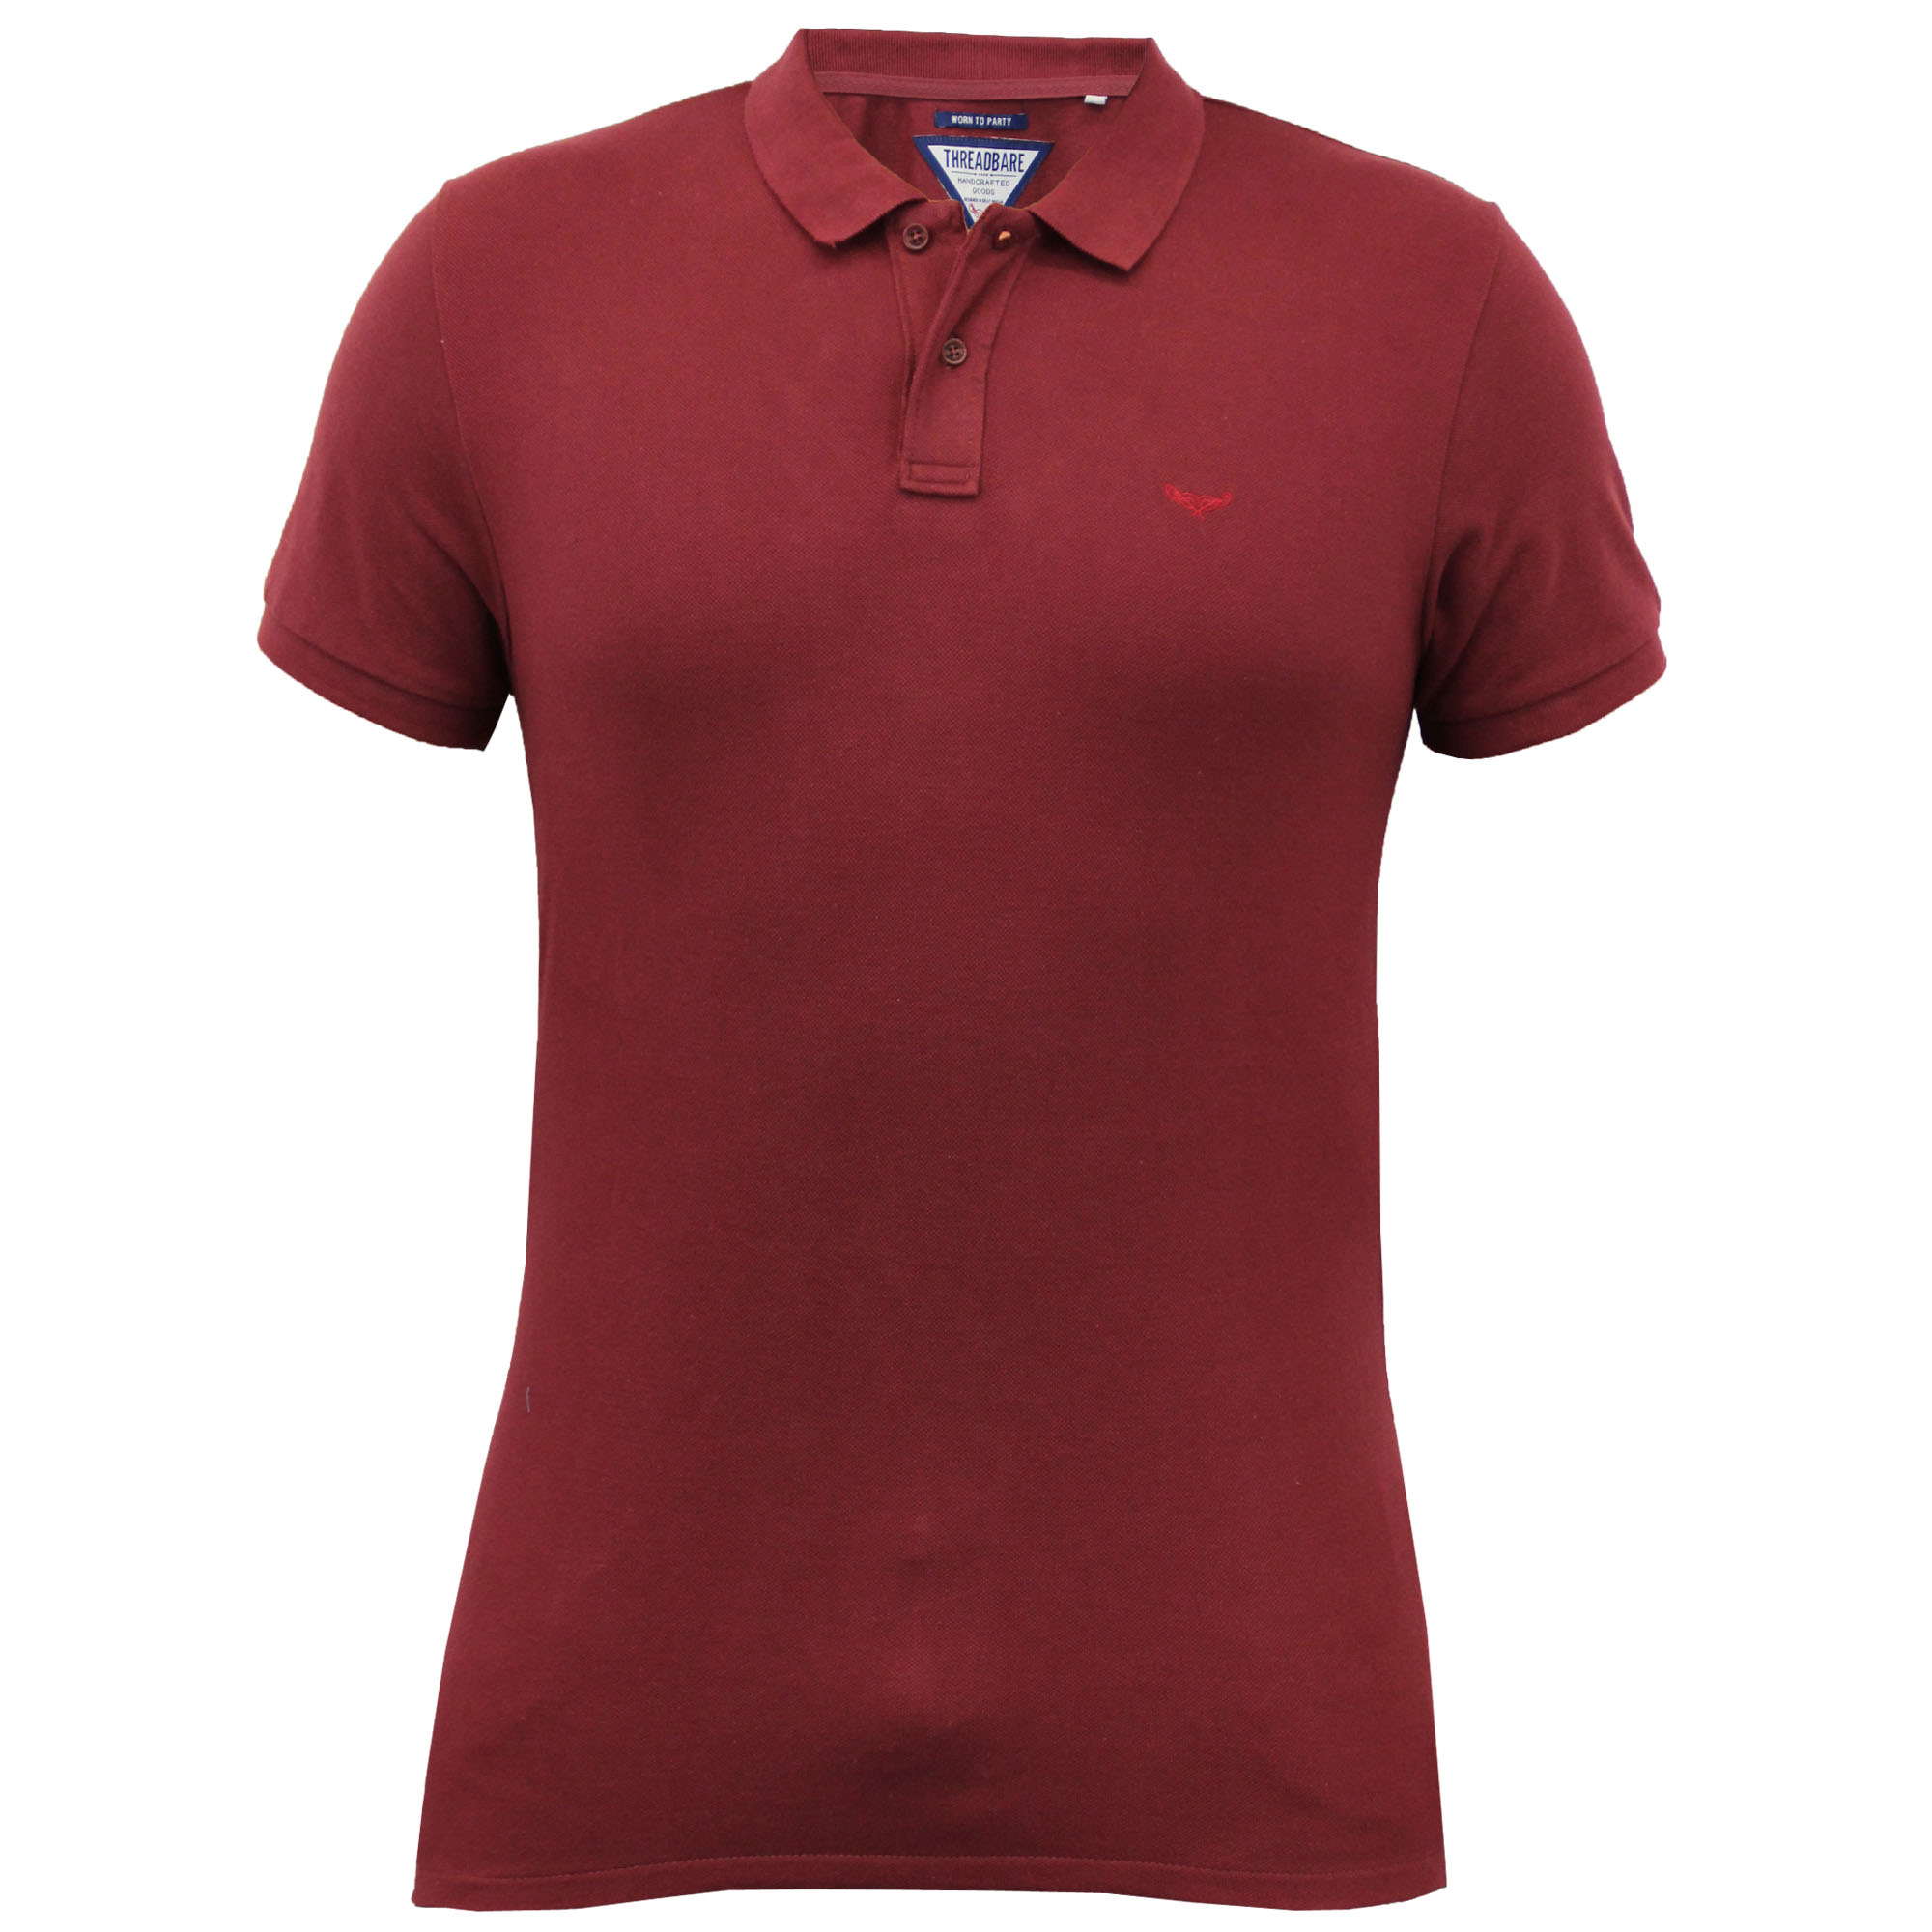 Mens polo t shirt threadbare top collared short sleeved for Mens casual collared shirts